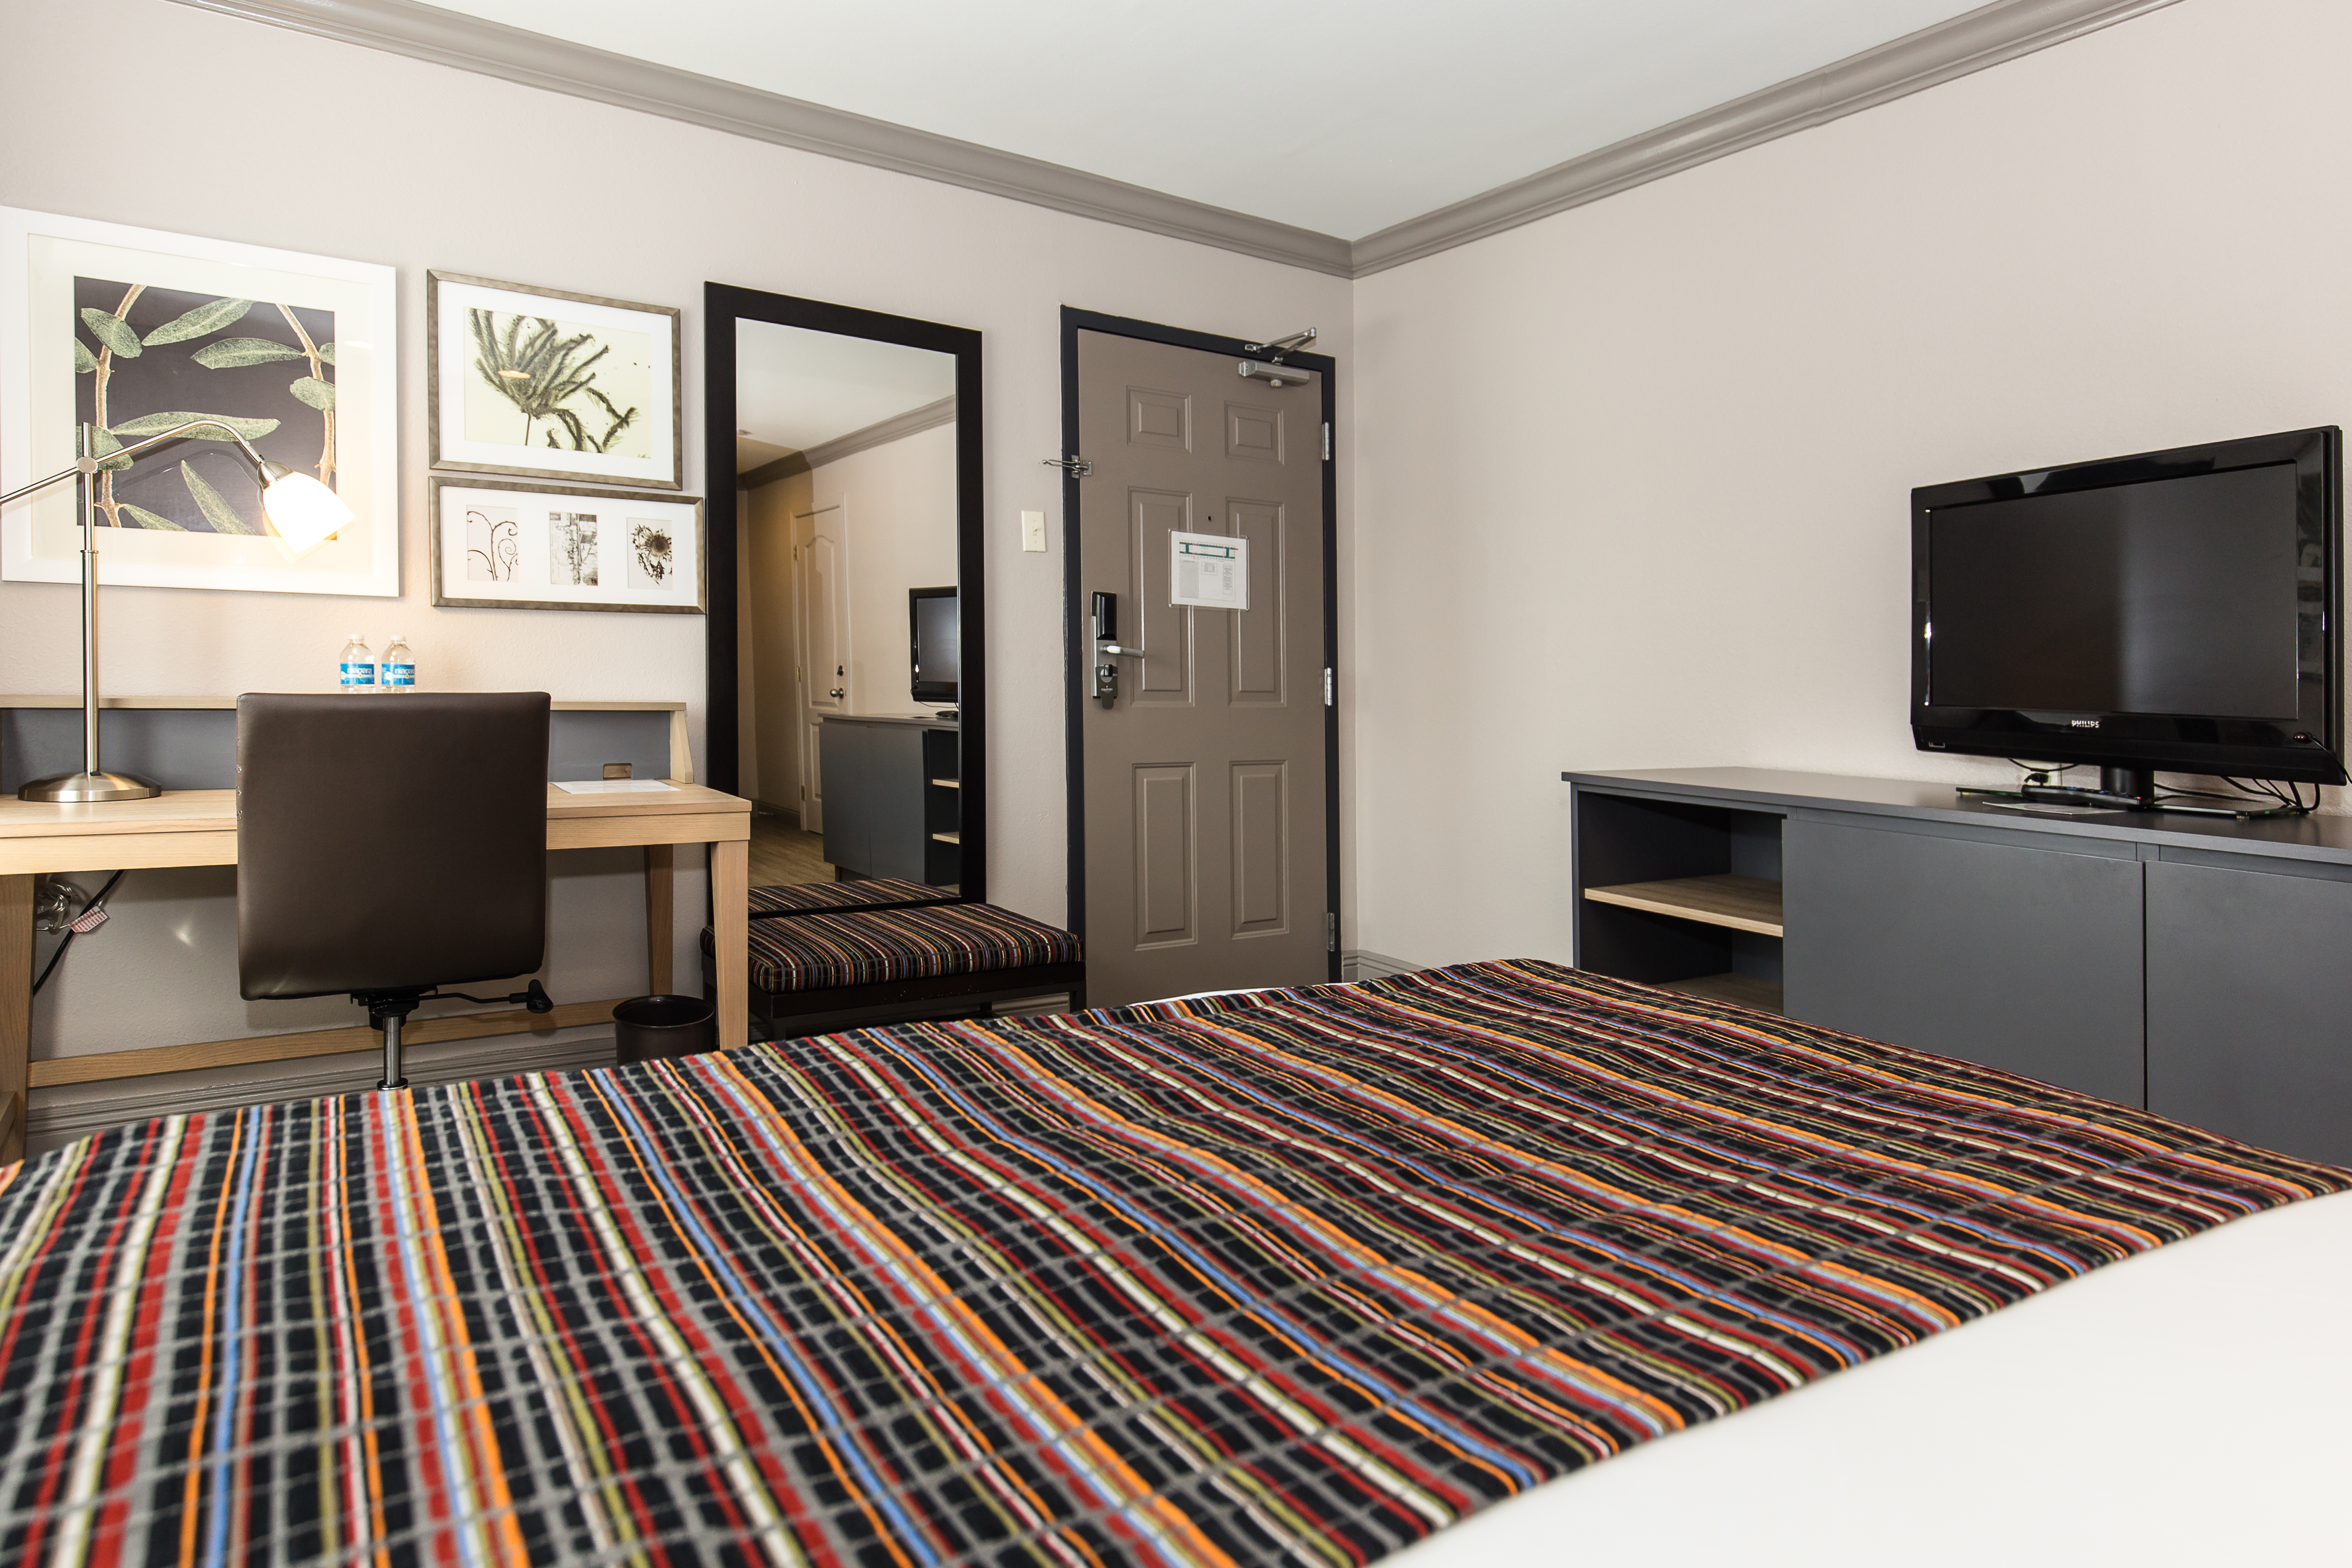 Country Inn & Suites by Radisson, Metairie (New Orleans), LA image 1